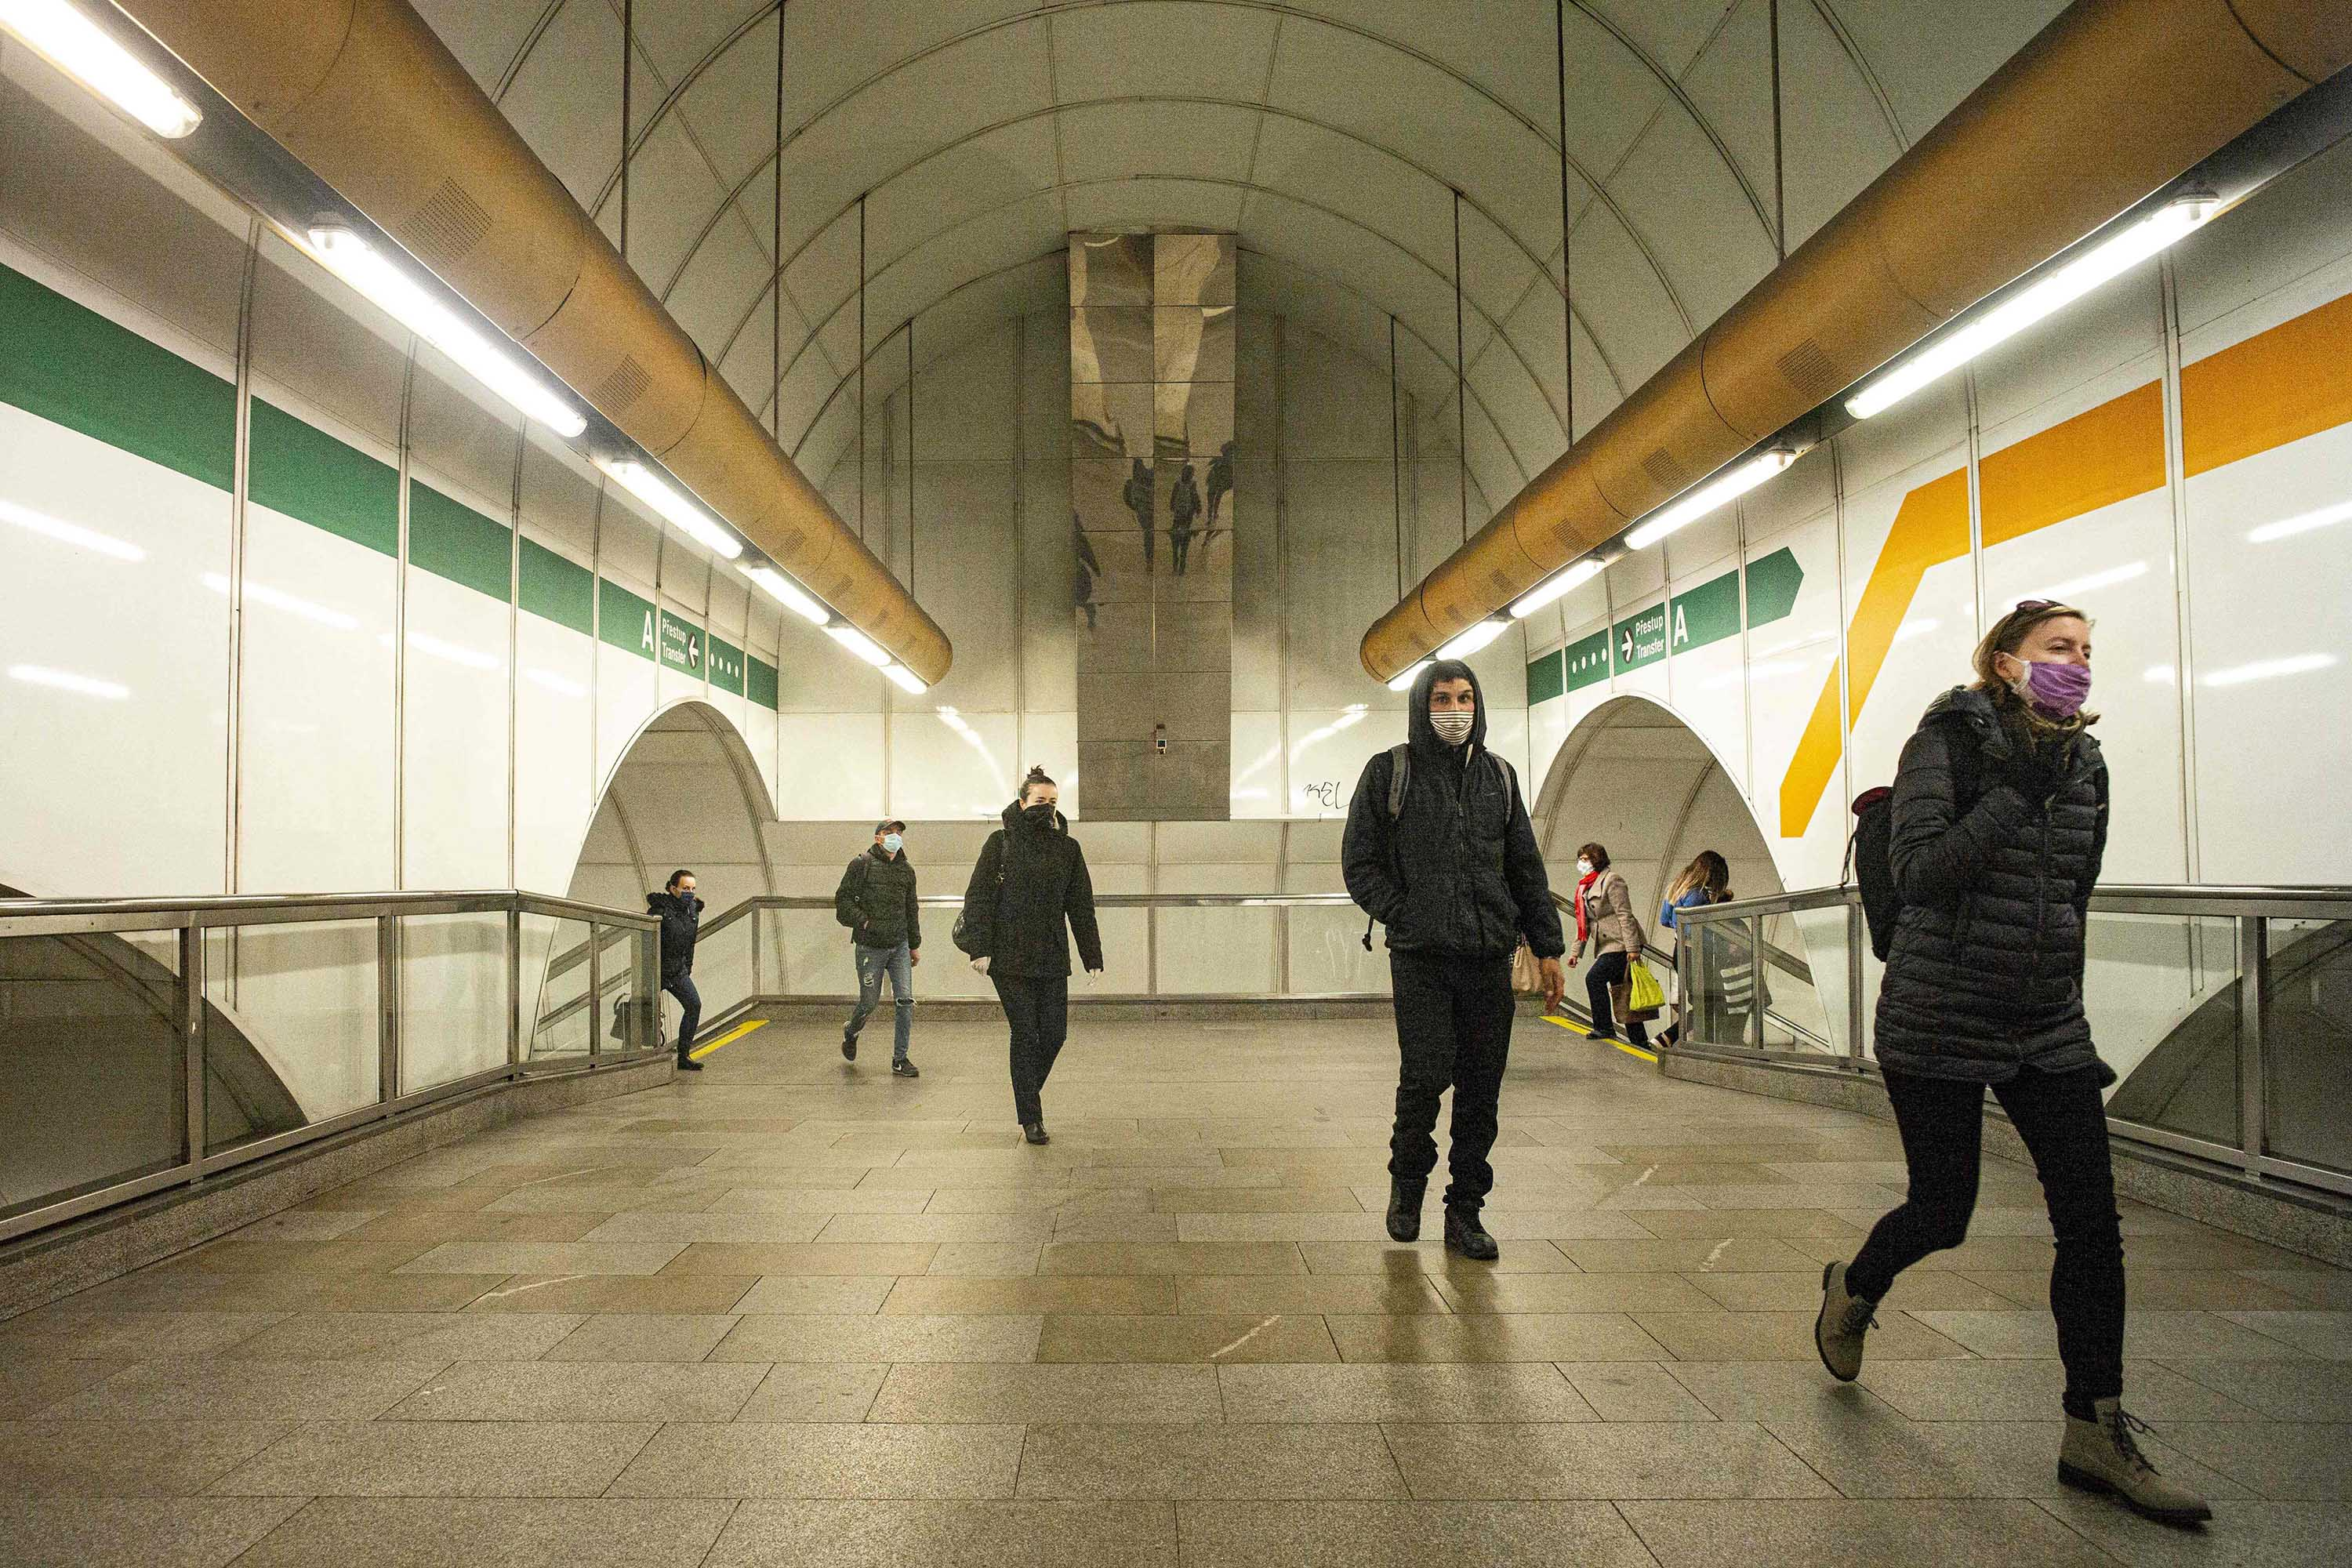 Commuters wearing face masks make their way through a metro station in Prague, the capital of the Czech Republic, on April 15.